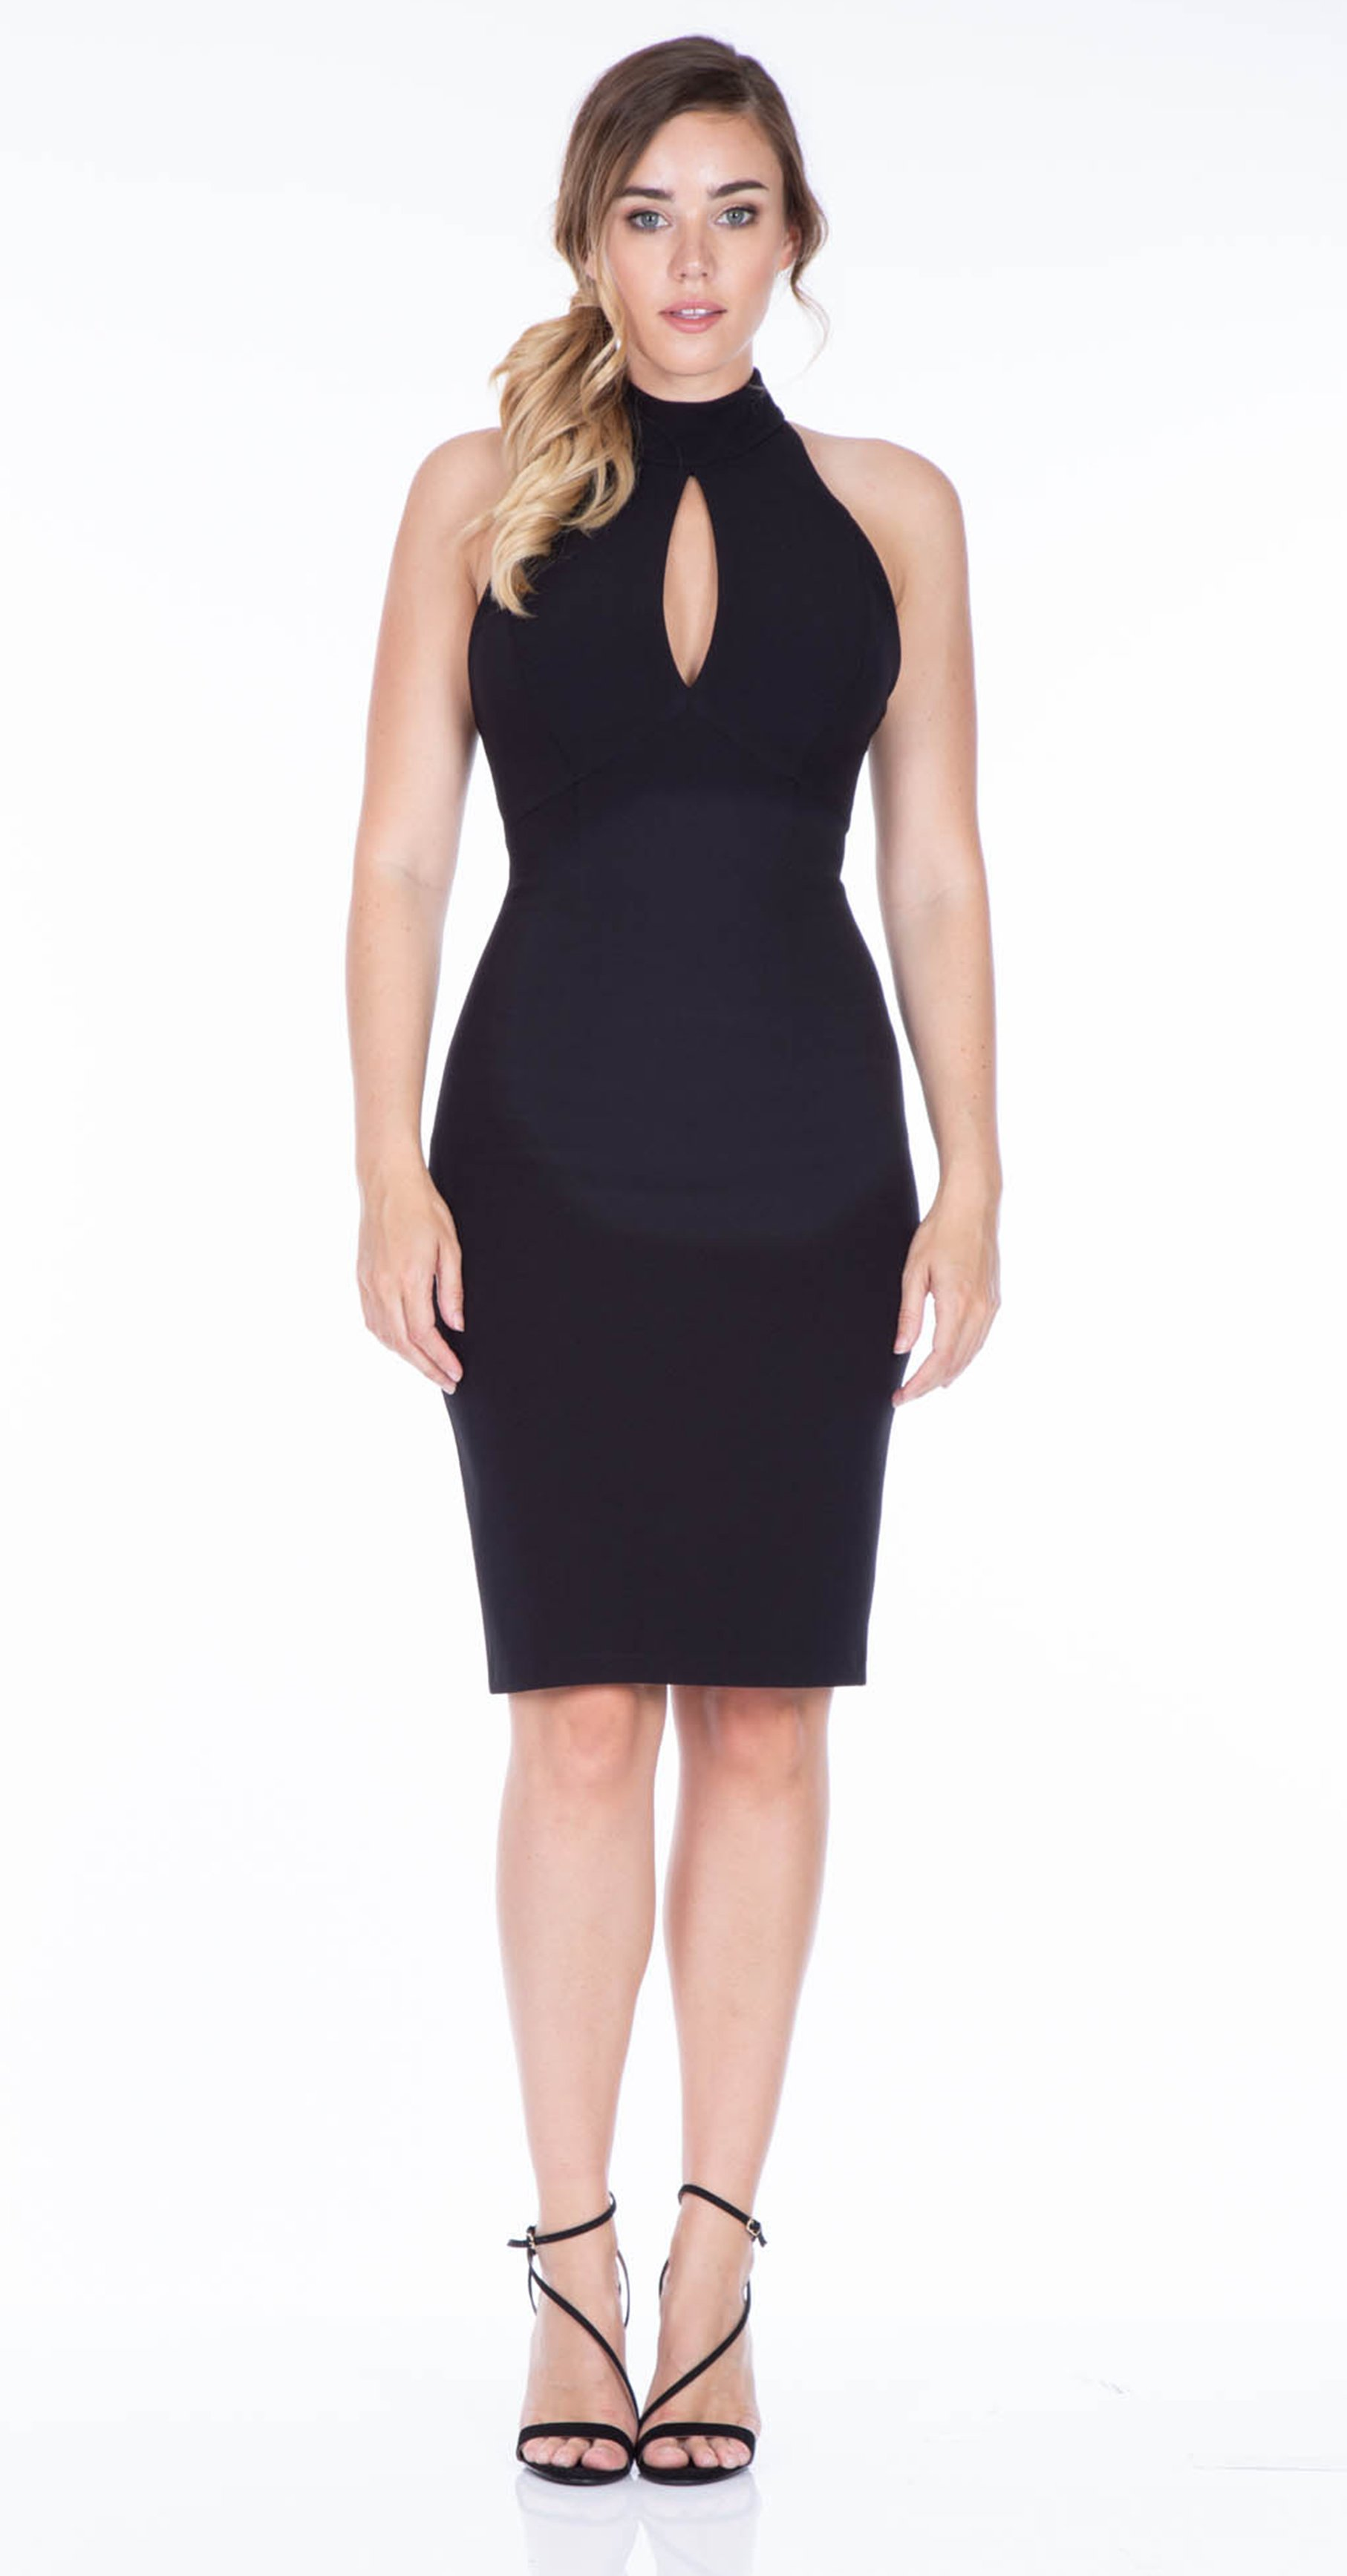 Mellaris - Suri Dress - Black